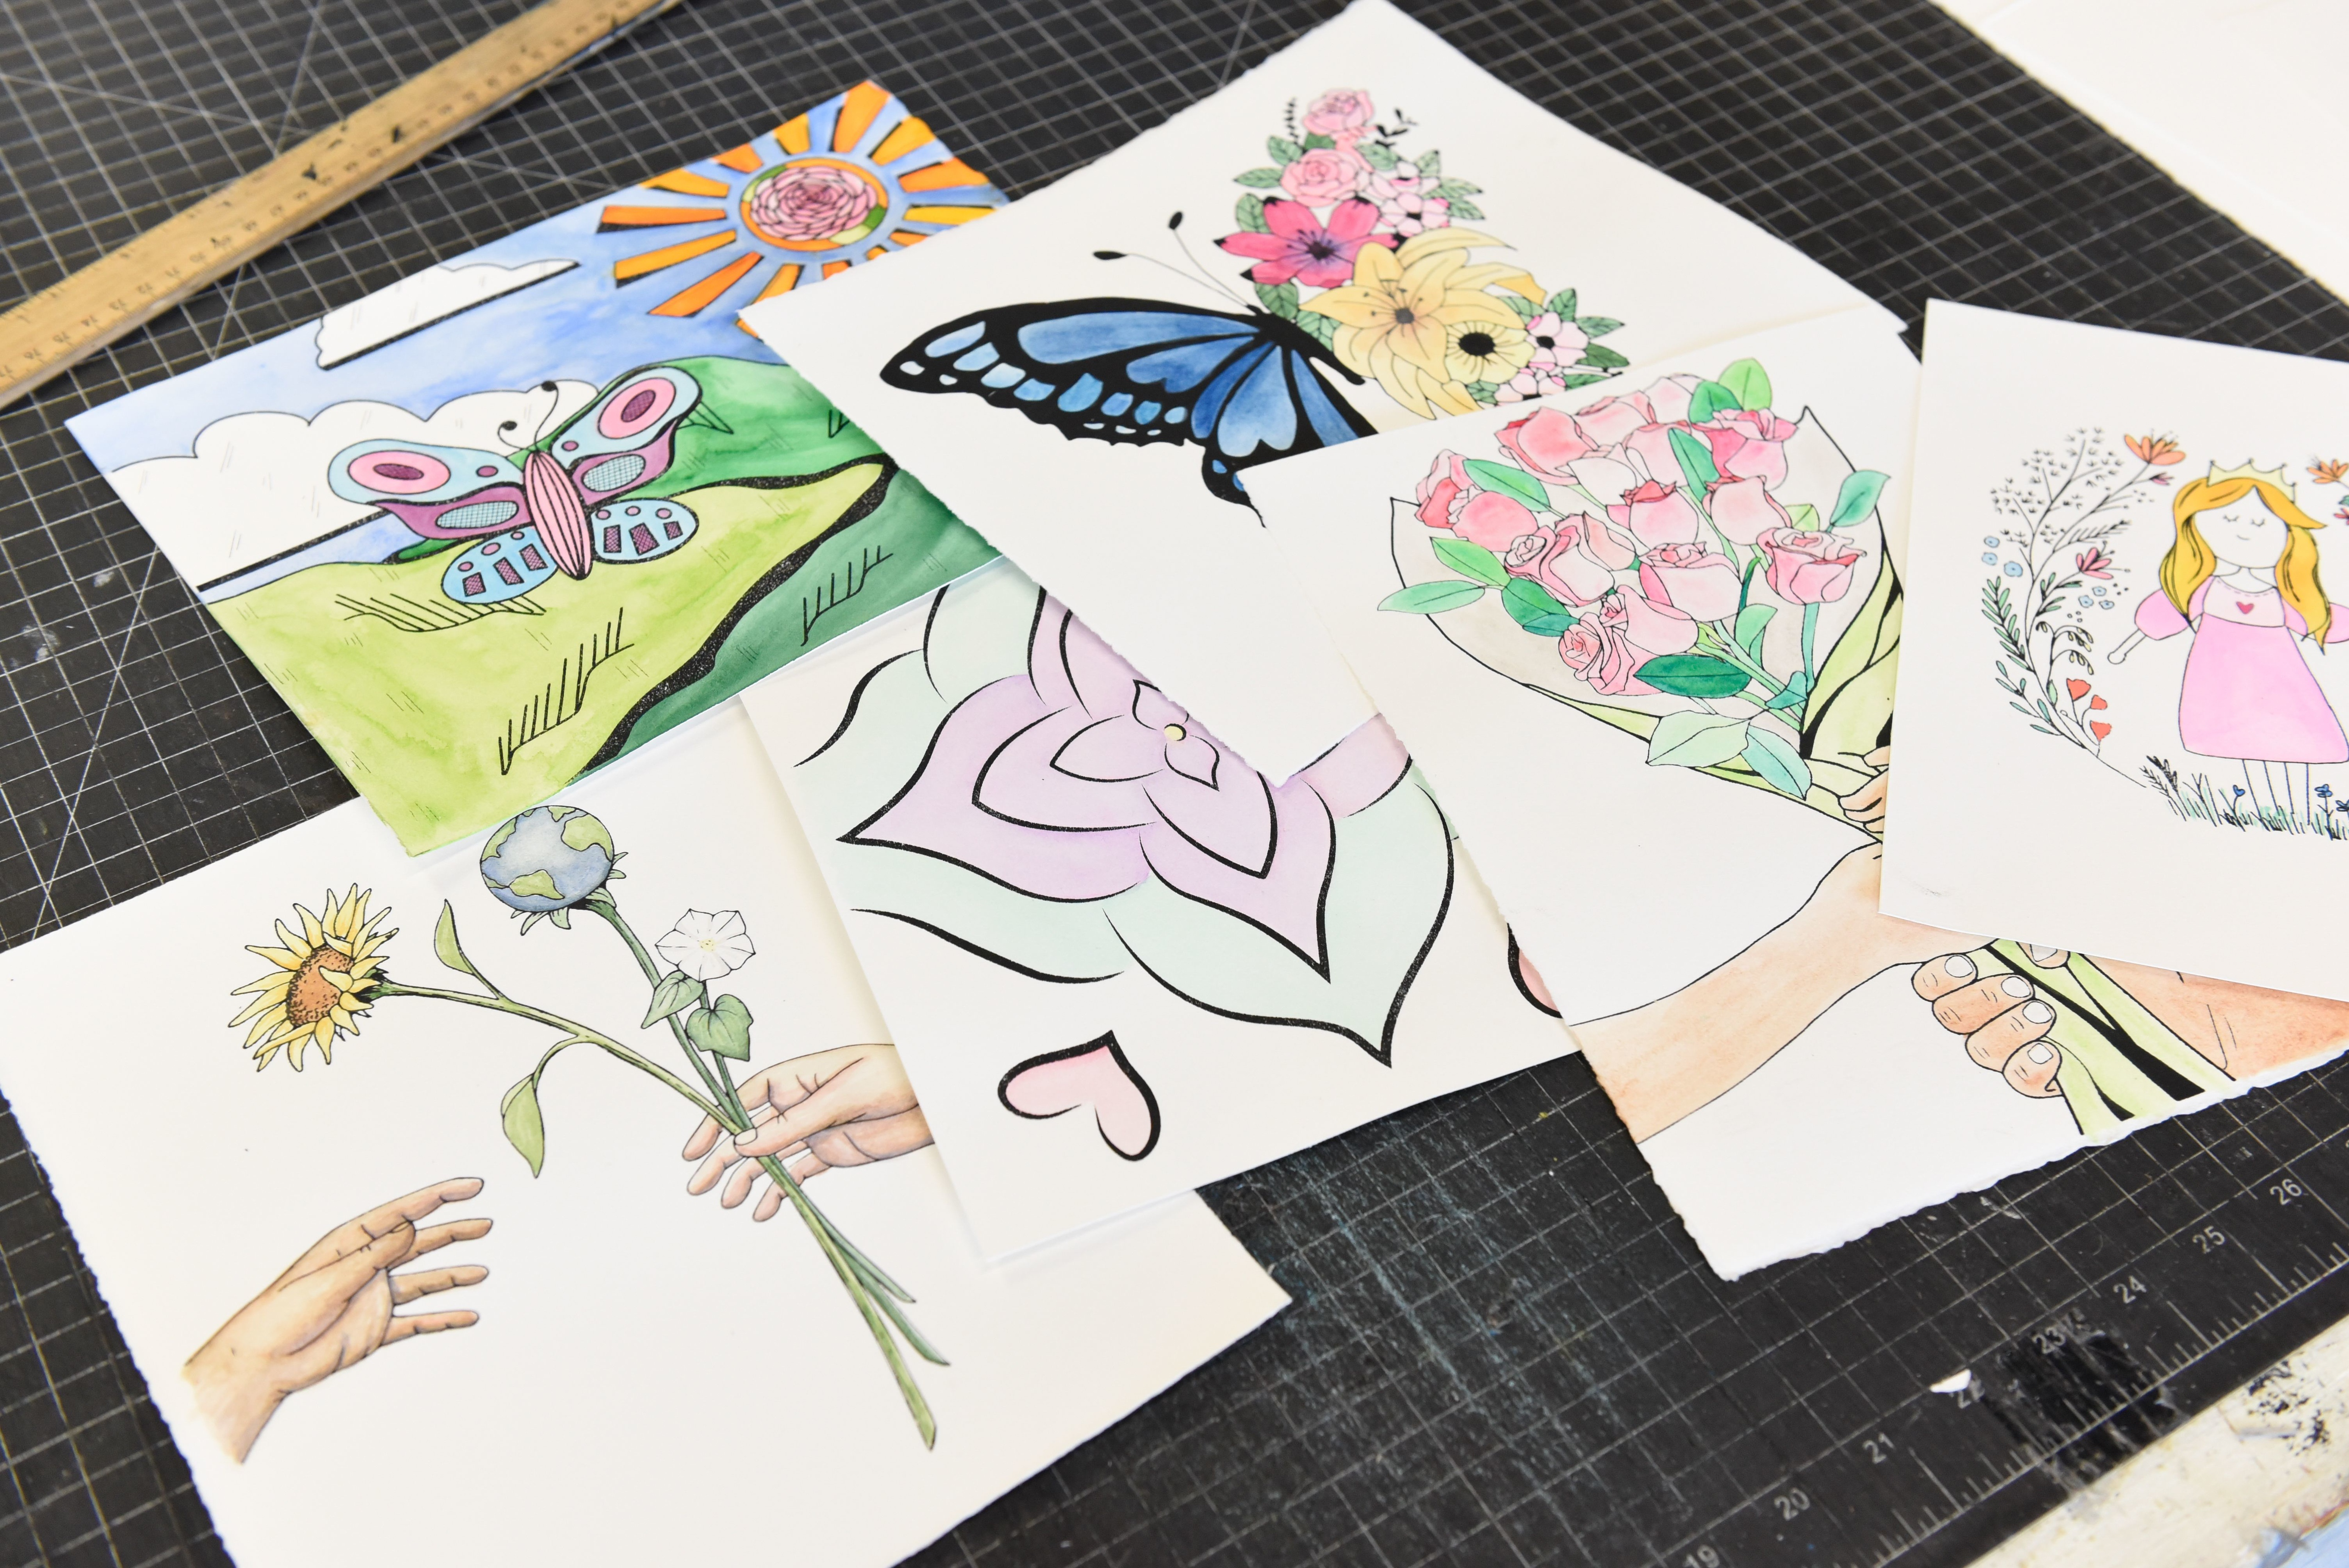 Image for Georgia College art students create watercolor prints for kids in Cameroon